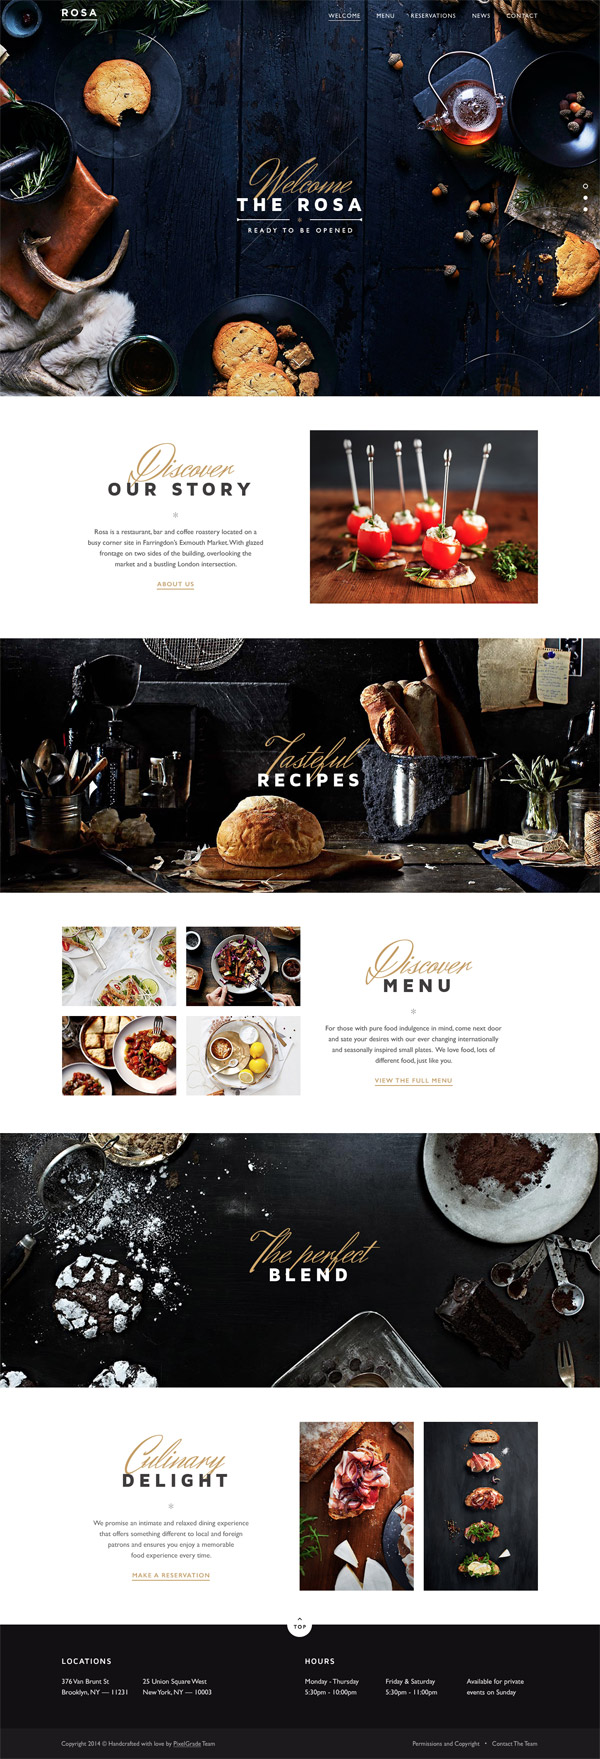 Rosa Restaurant Website by George Olaru